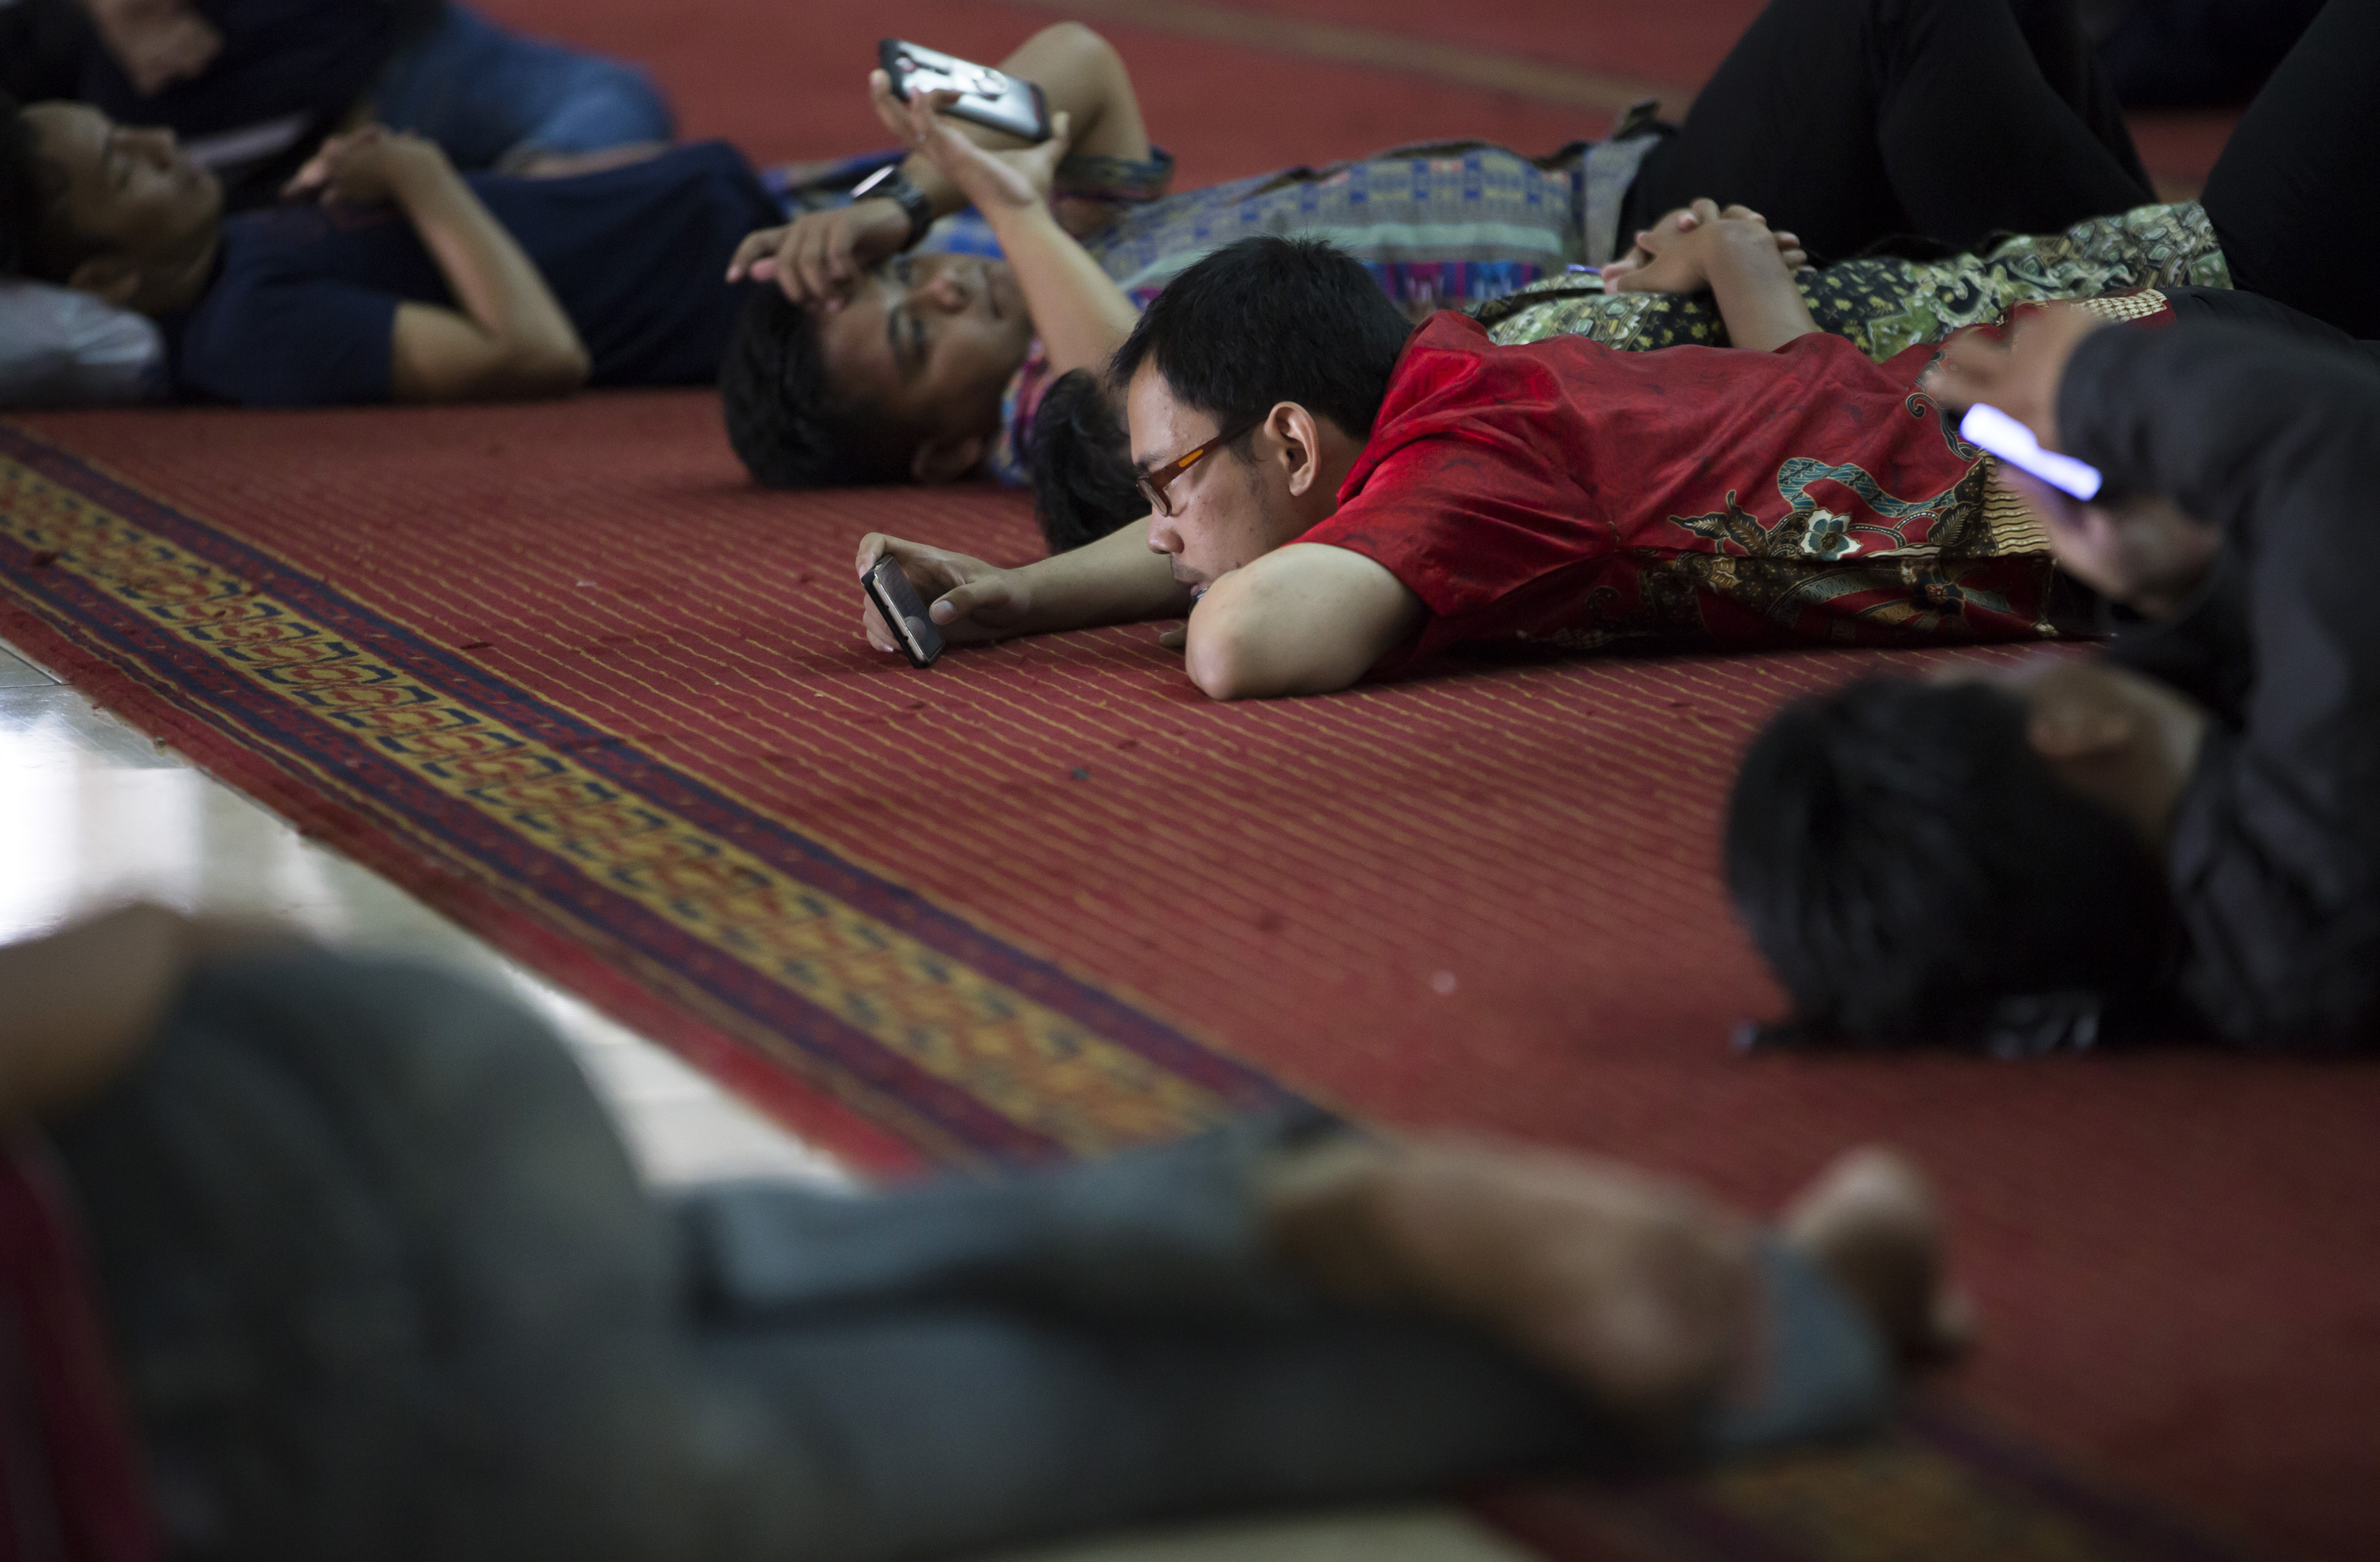 Muslims use smartphones as they rest after attending Friday prayers at the Istiqlal Mosque on Sept. 30, 2016, in Jakarta